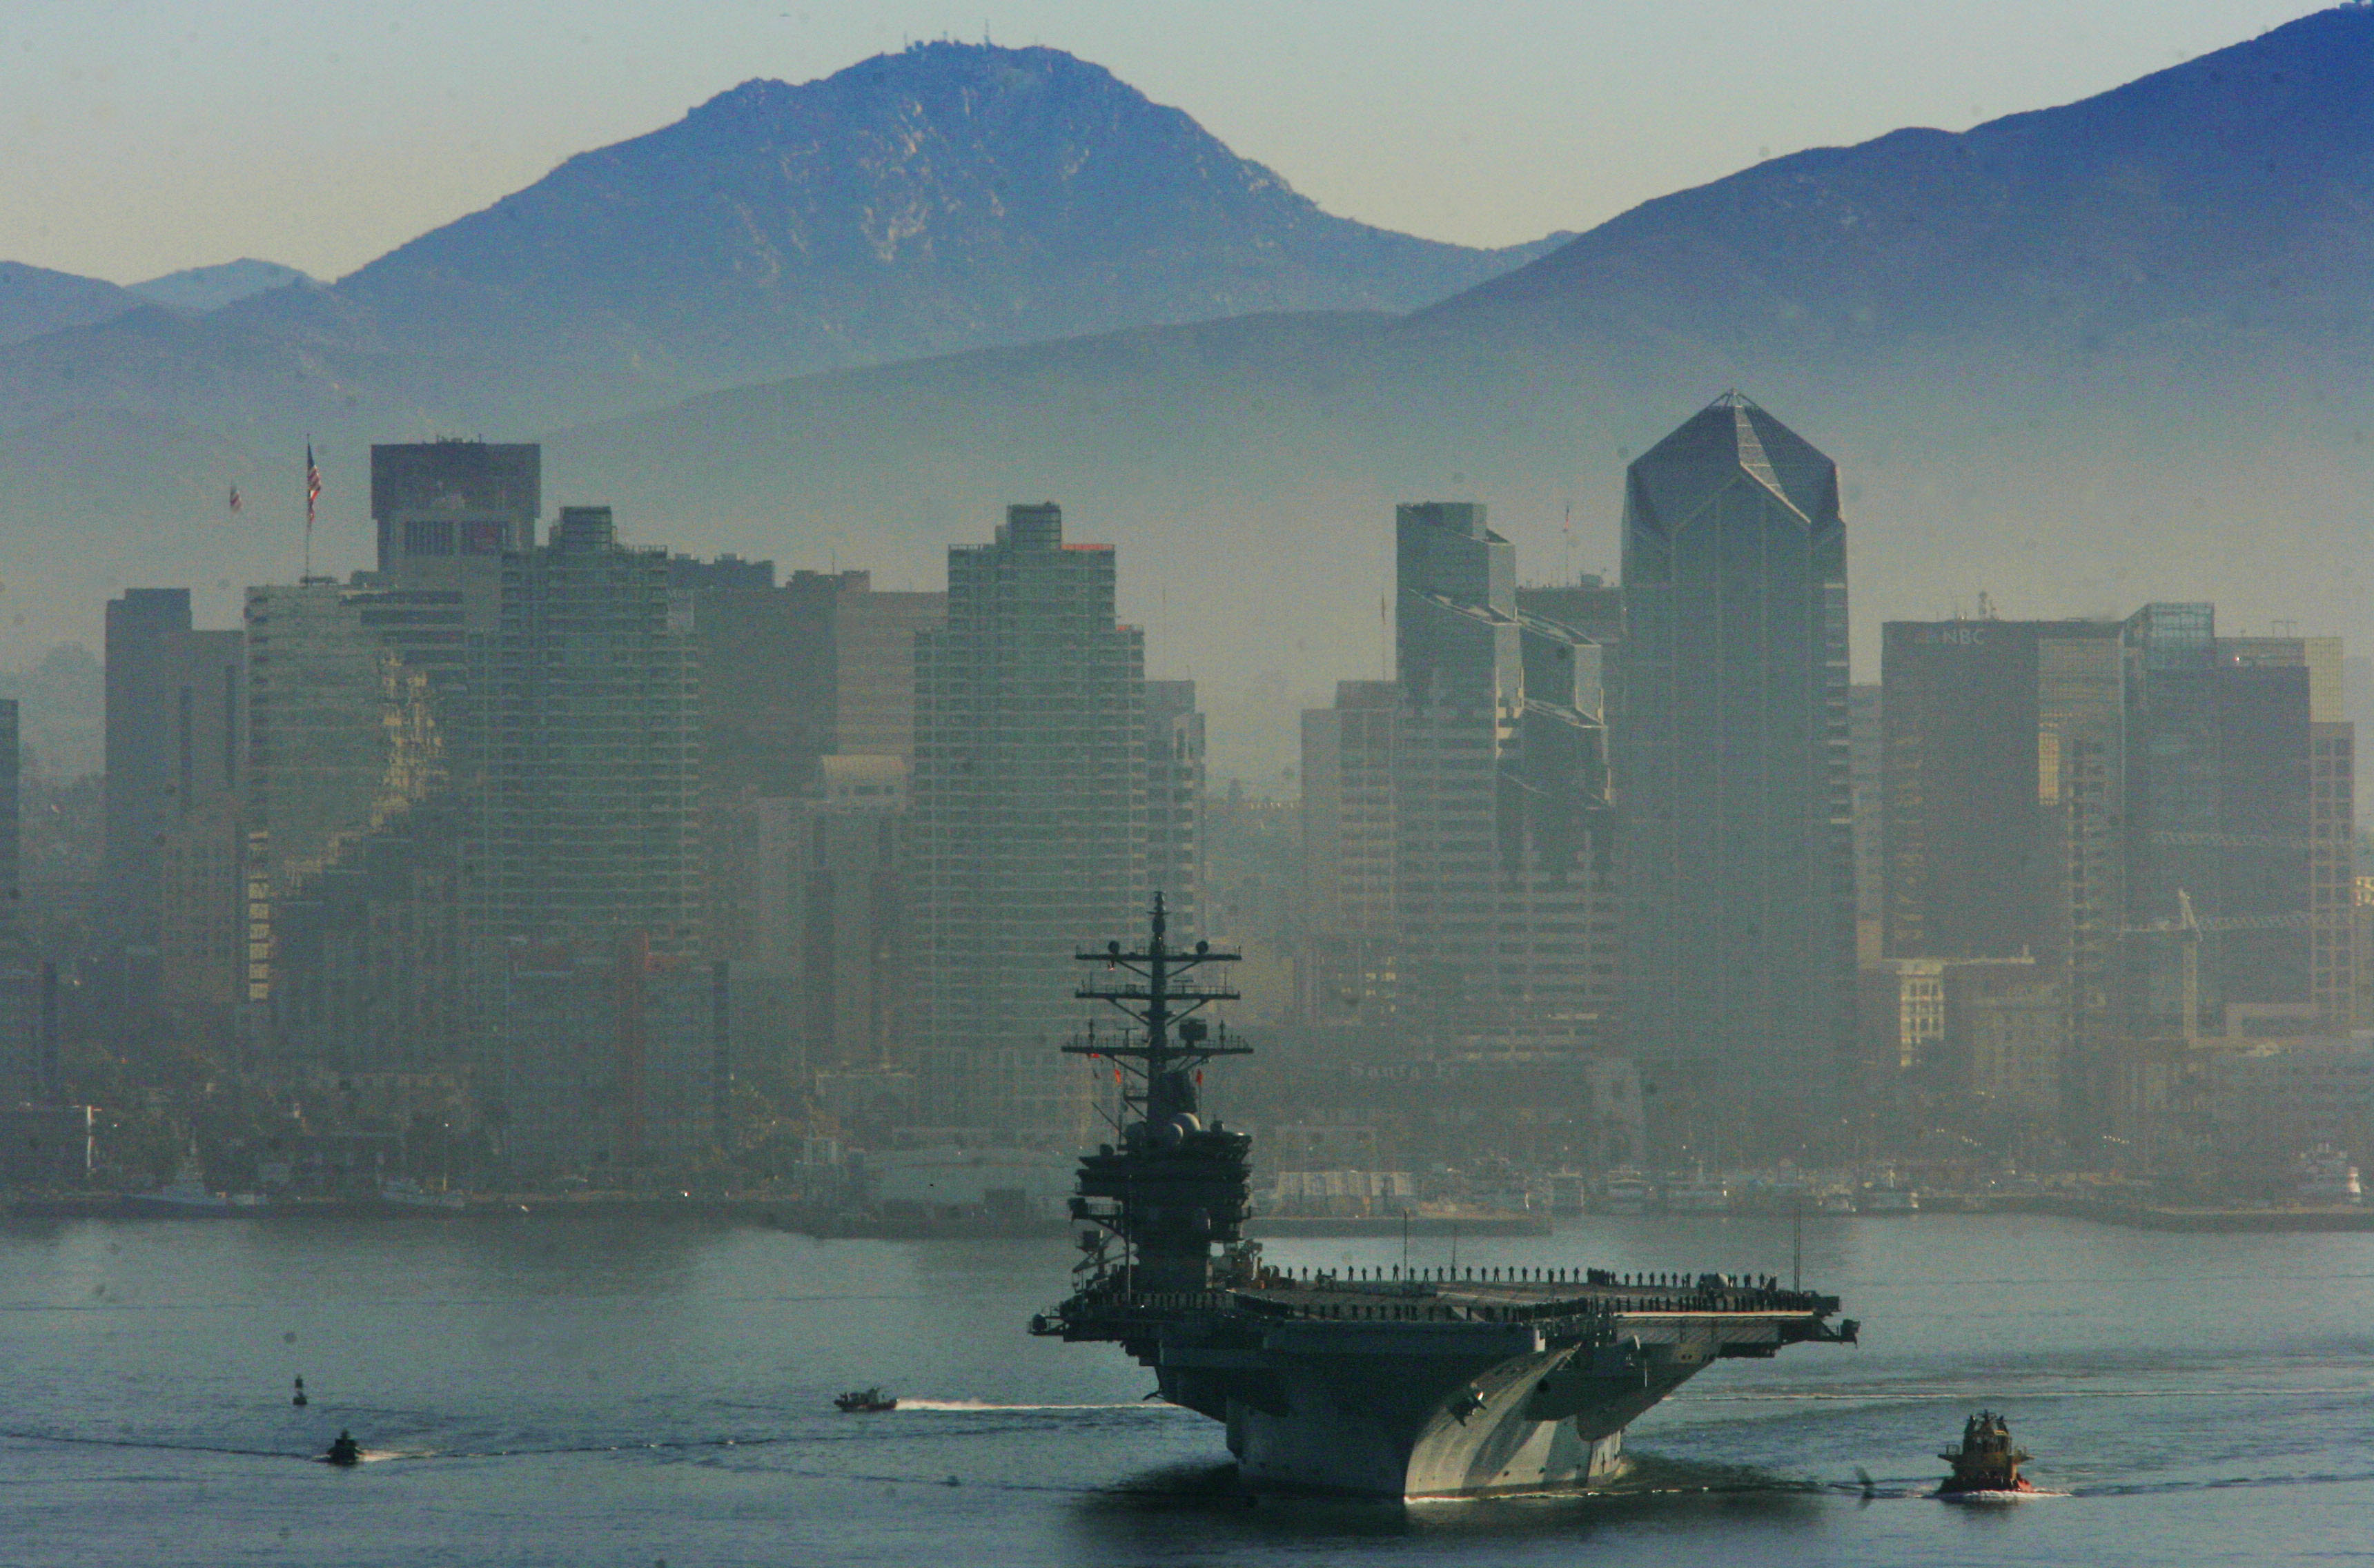 The USS Ronald Reagan heads out to sea with the San Diego skyline in the background Jan. 4, 2006, at Naval Air Station Coronado, California. (Sandy Huffaker/Getty Images)